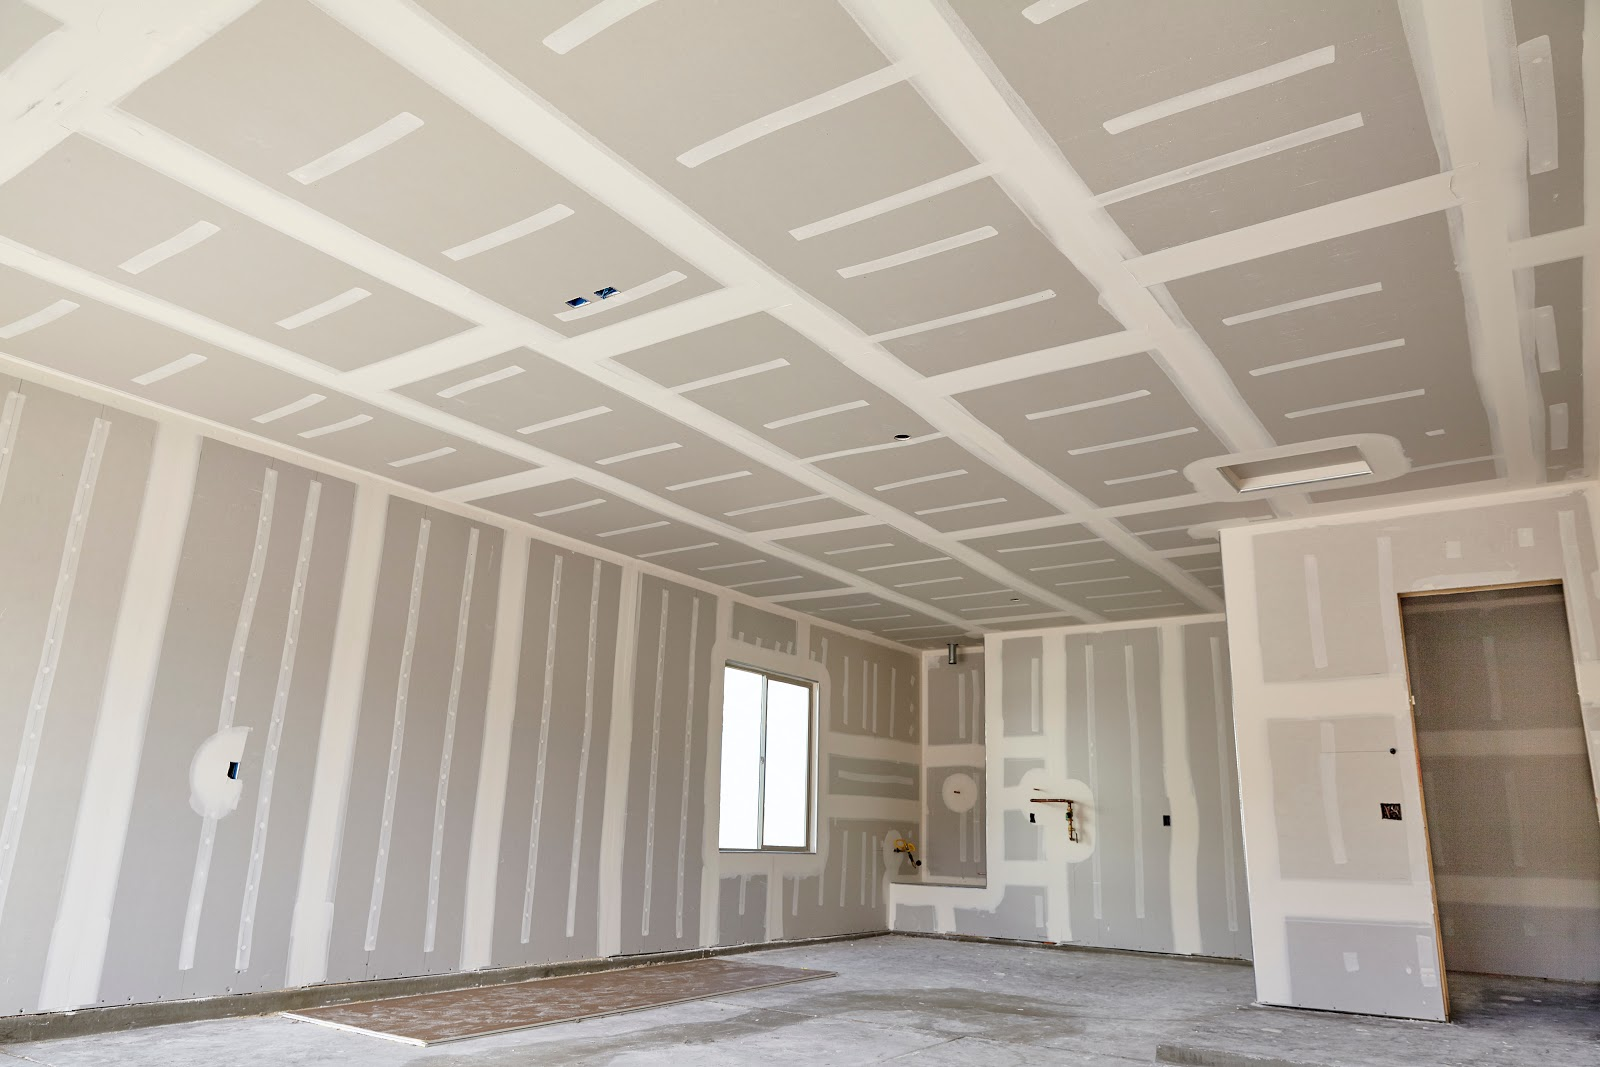 Finished dry wall project with no paint